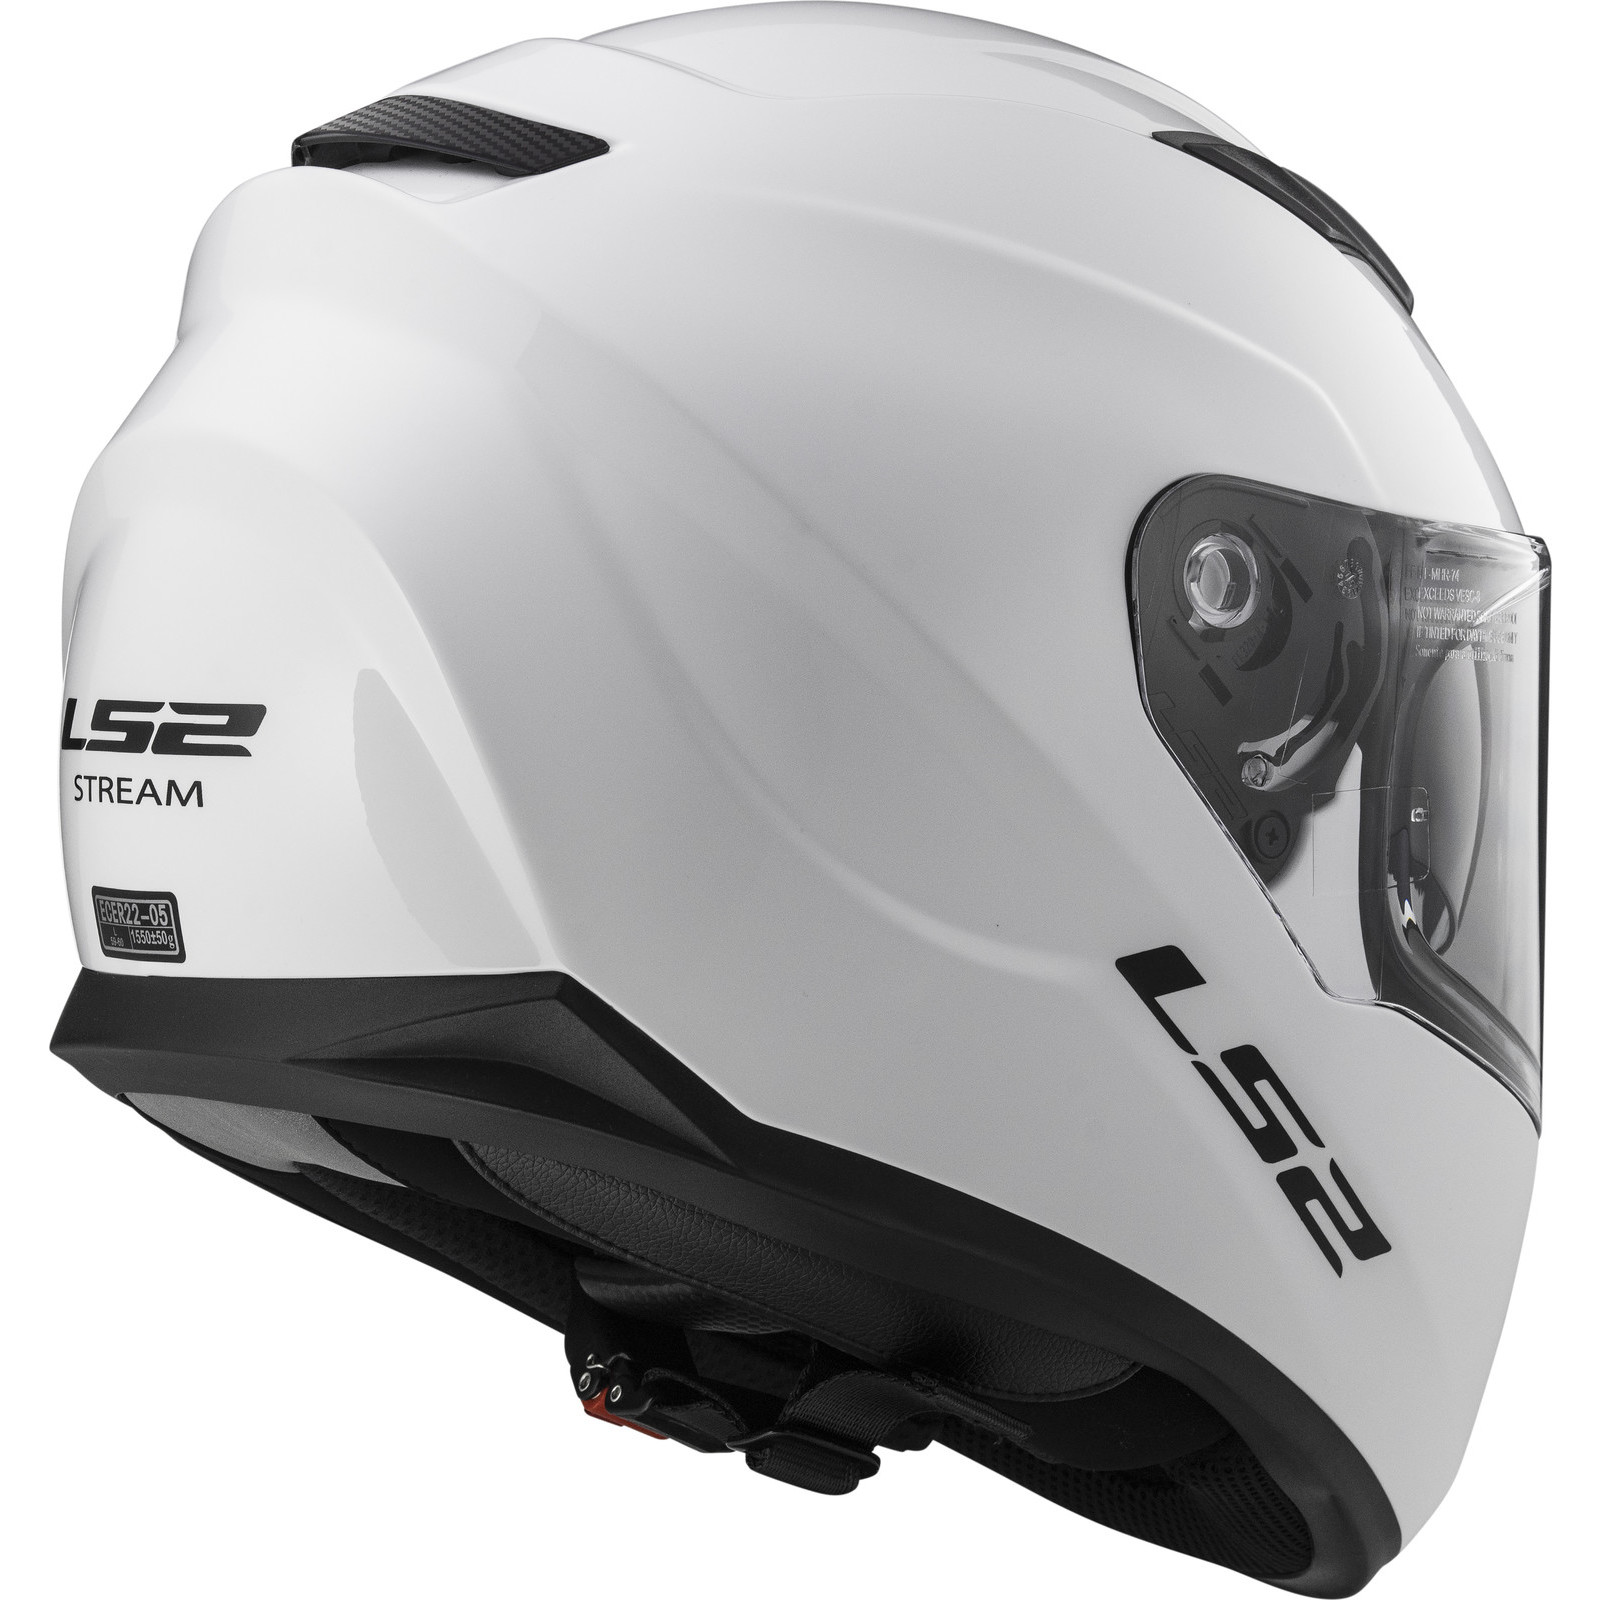 Helmet LS2 320 STREAM (SOLID White)